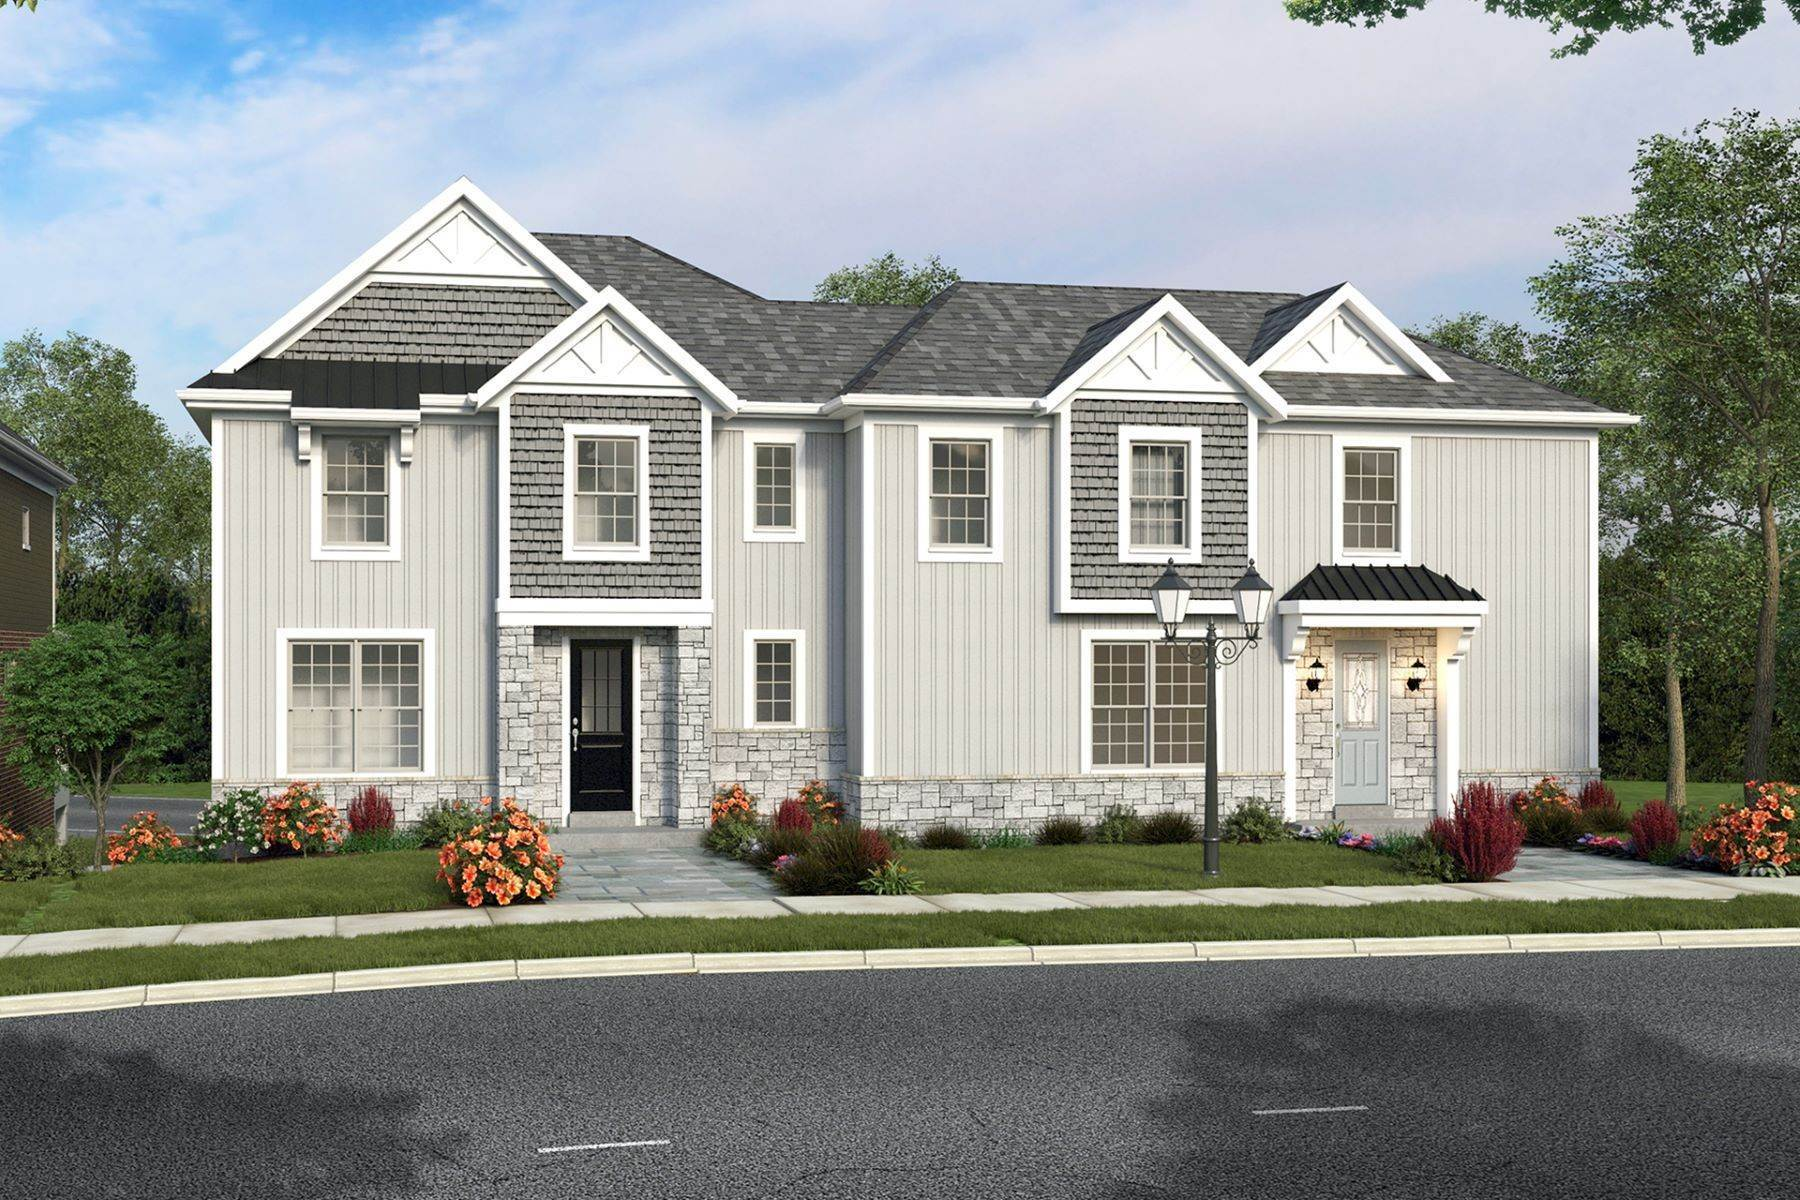 townhouses for Sale at Creekside Pointe-Blue Ash's Premiere Lifestyle Community built by Cedar Hill Cus 9320 Old Plainfield Road Blue Ash, Ohio 45236 United States